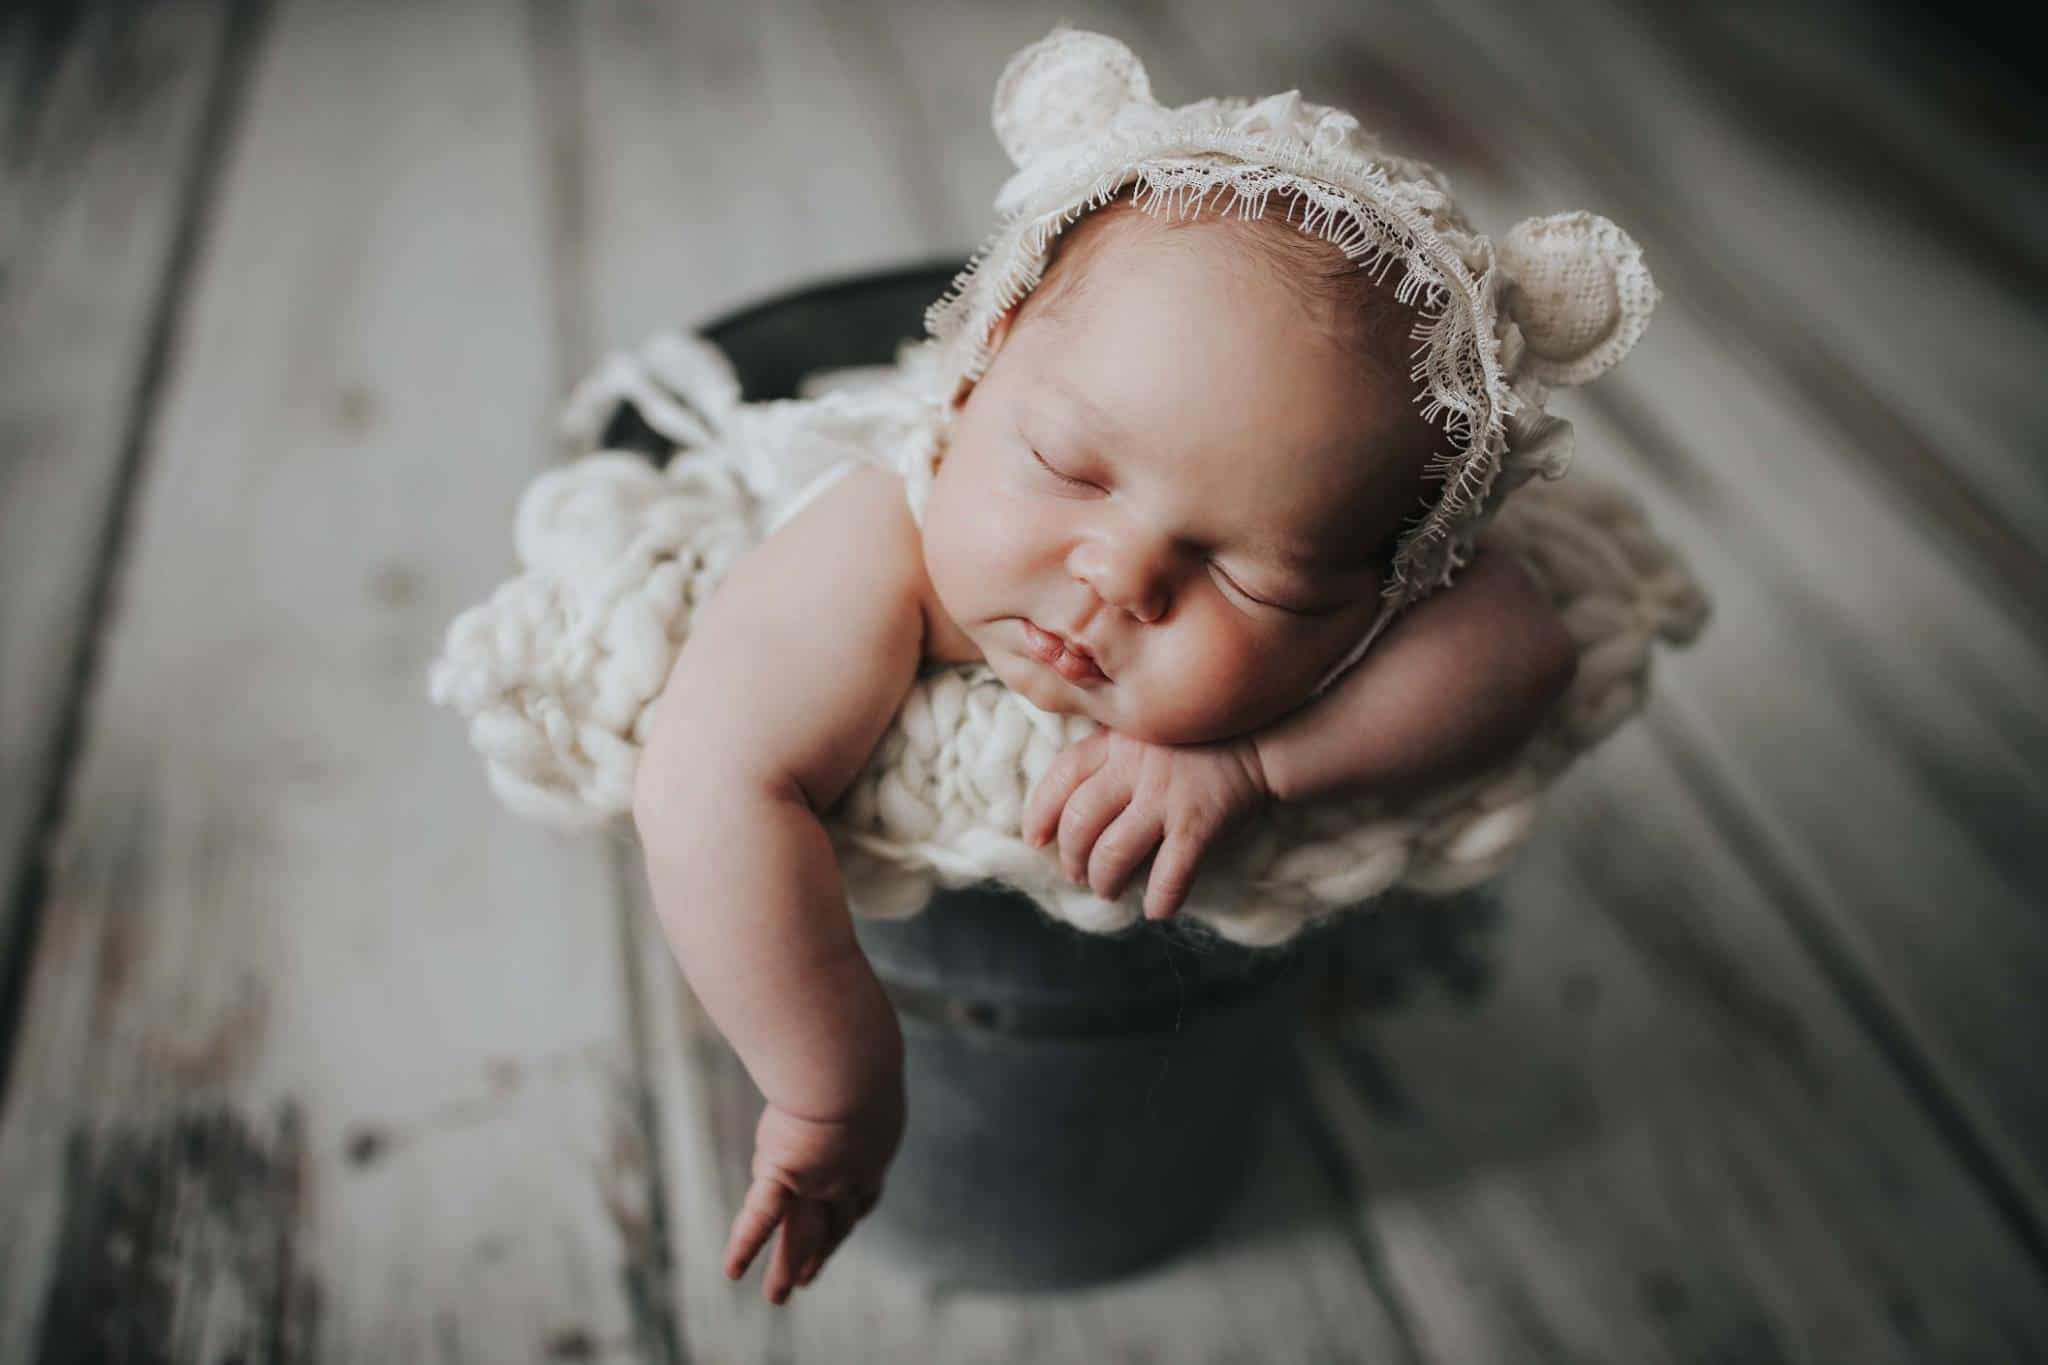 Newborn Photos - Our best LLF Photographers in 2018